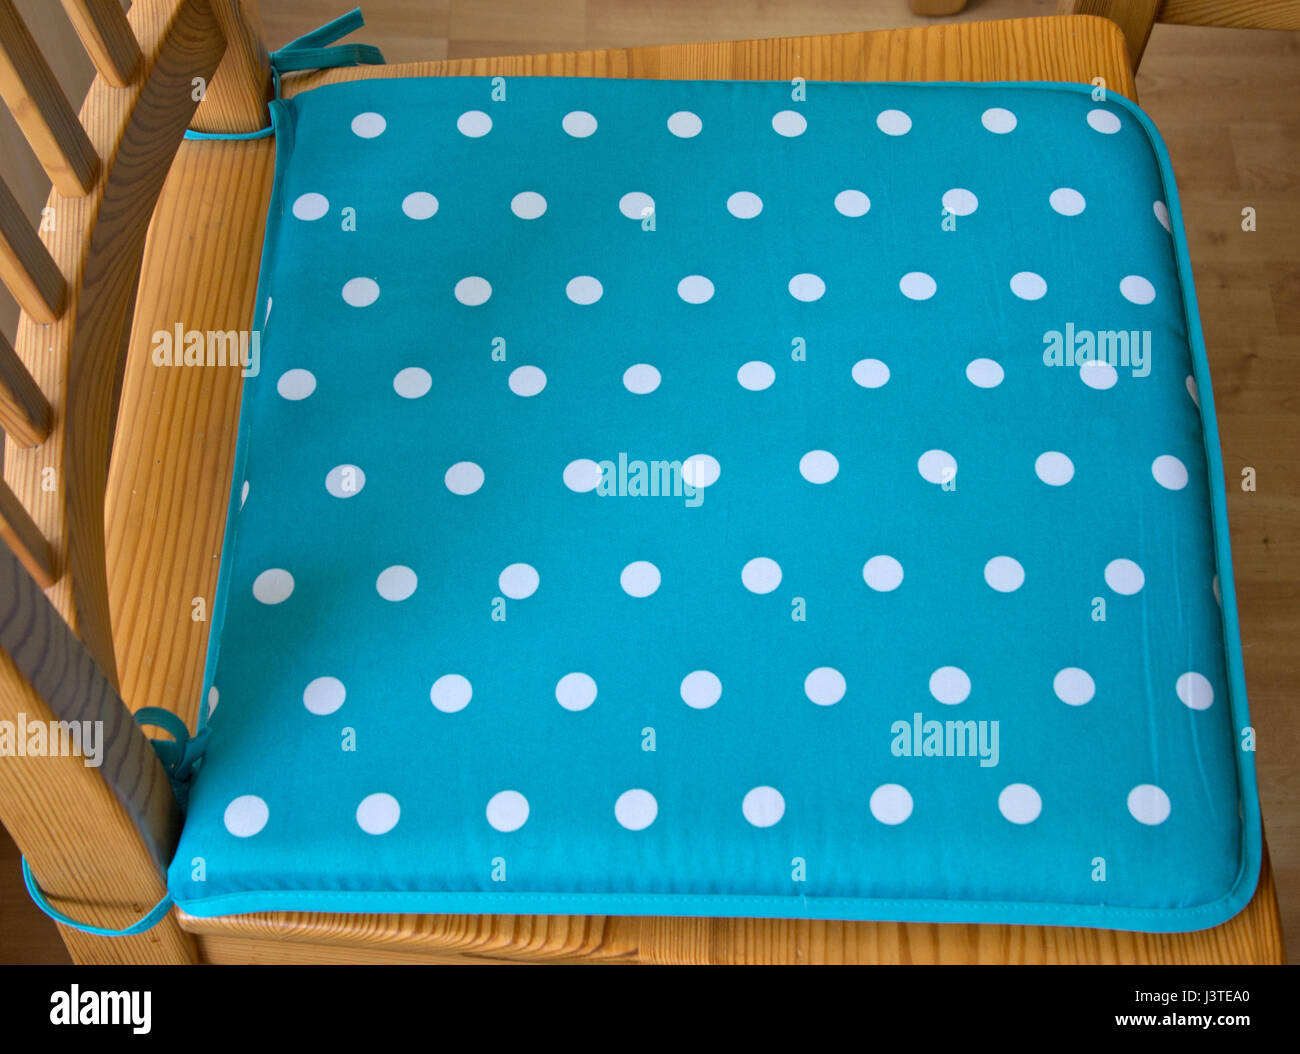 Chair cushion cover - Stock Image